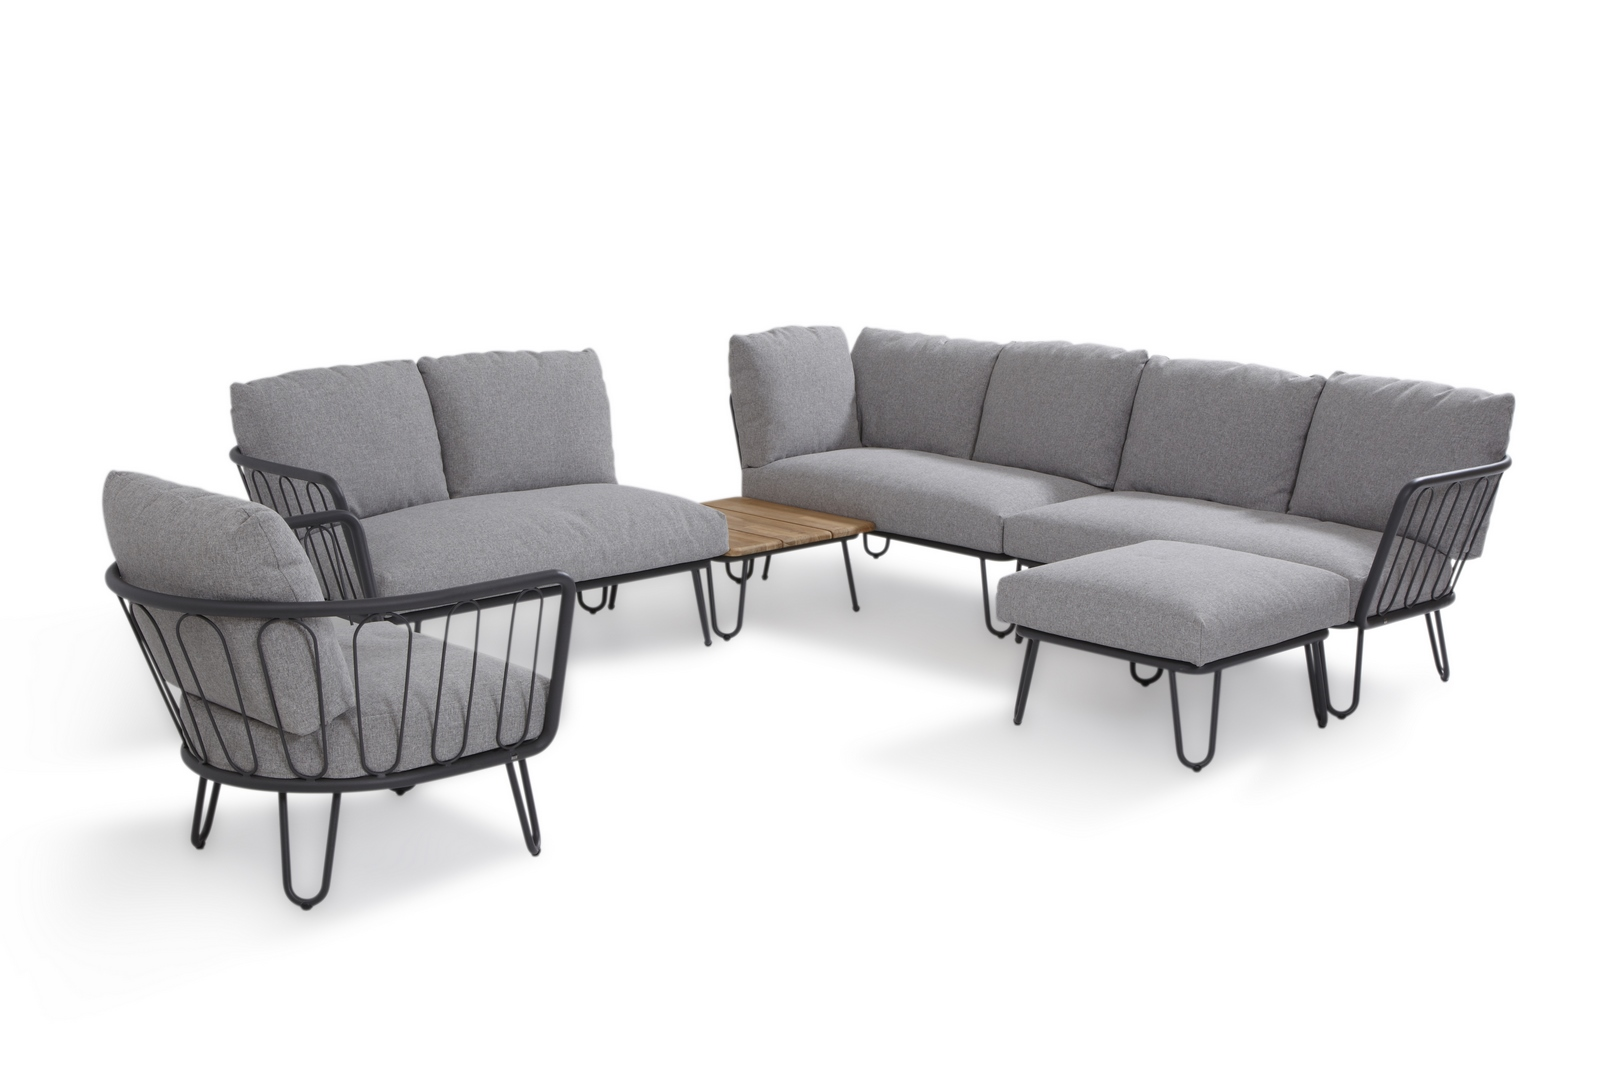 4 Seasons Outdoor Premium Loungeset